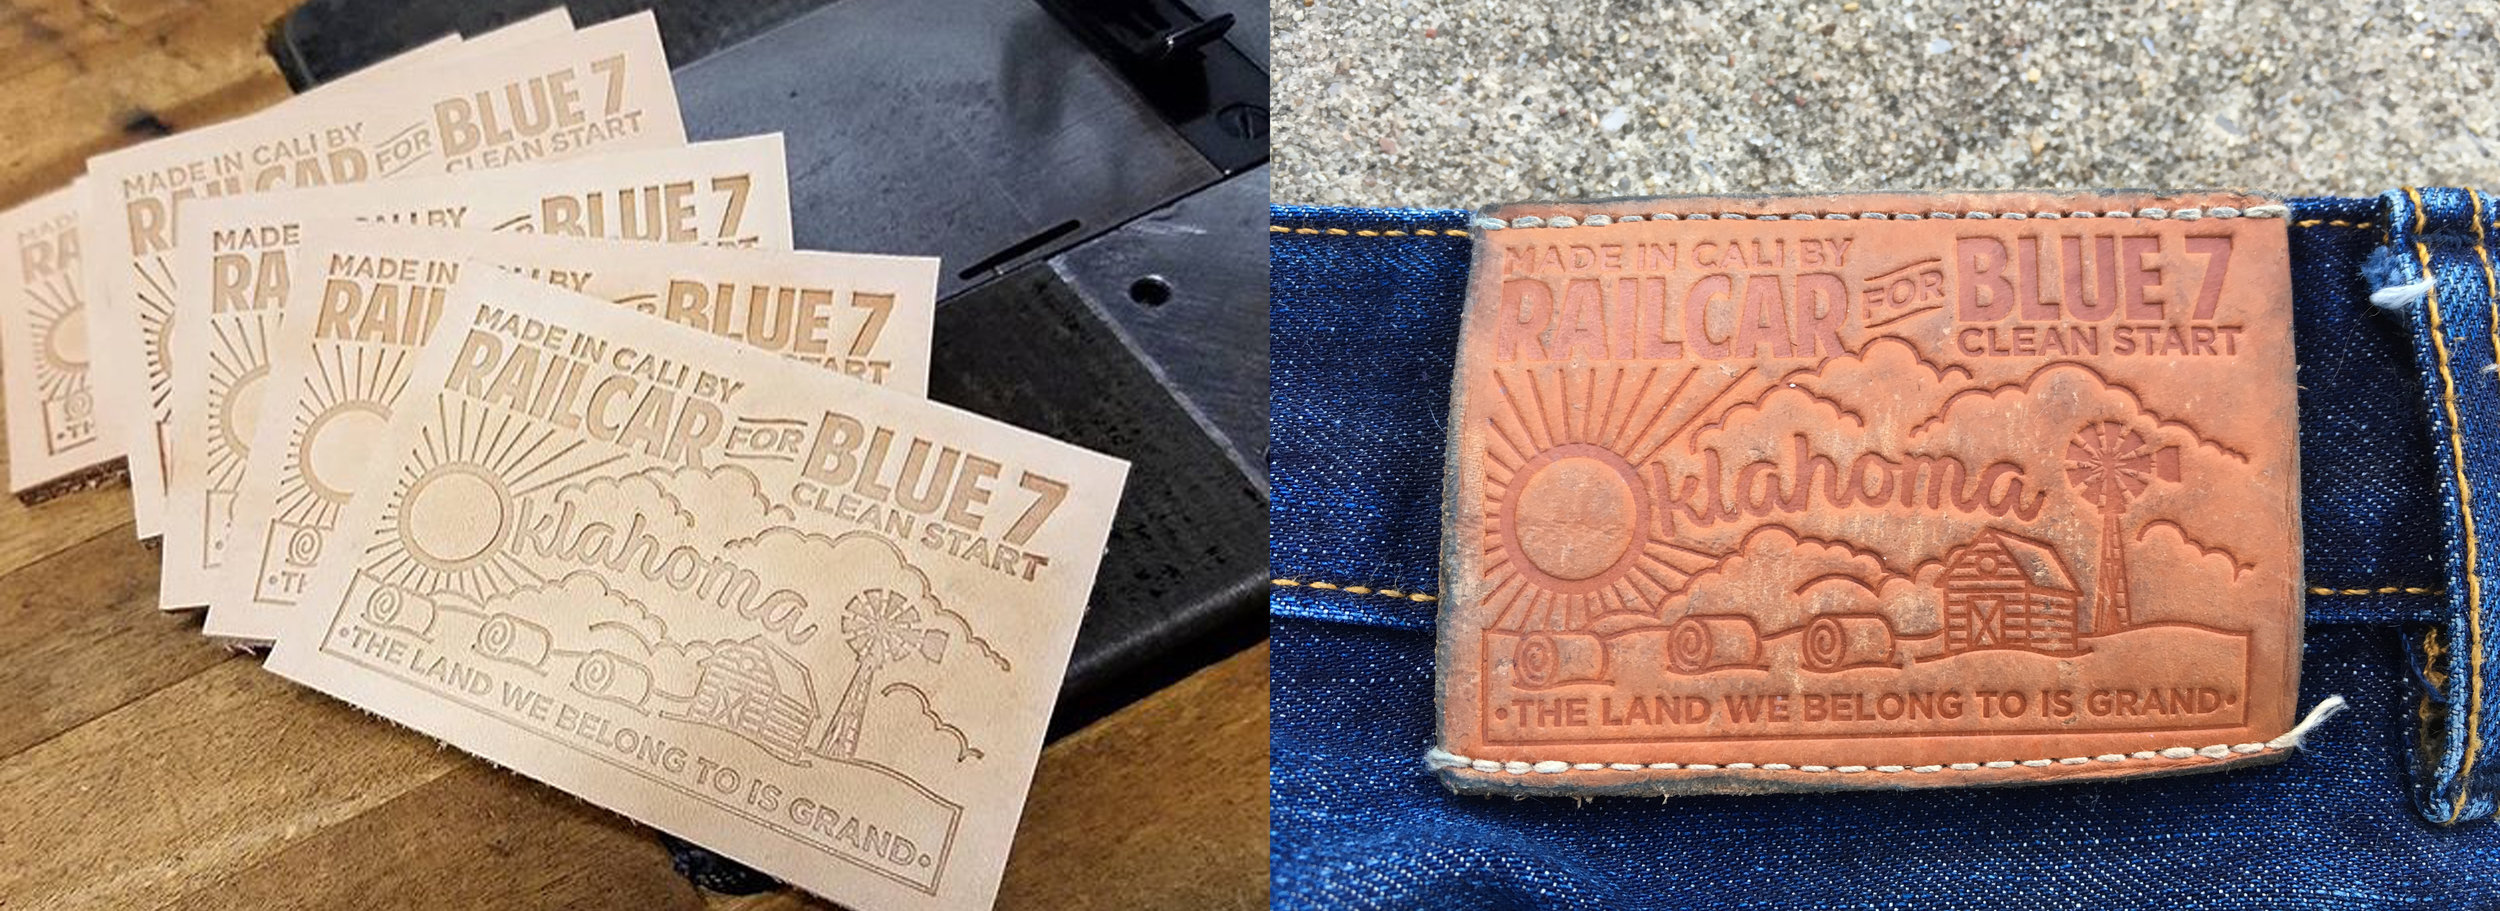 I'm very lucky to have been asked to help design the patch for this year's limited  Clean Start  jeans. Here's what they looked like right after being pressed, and what mine looked like after getting worn in.